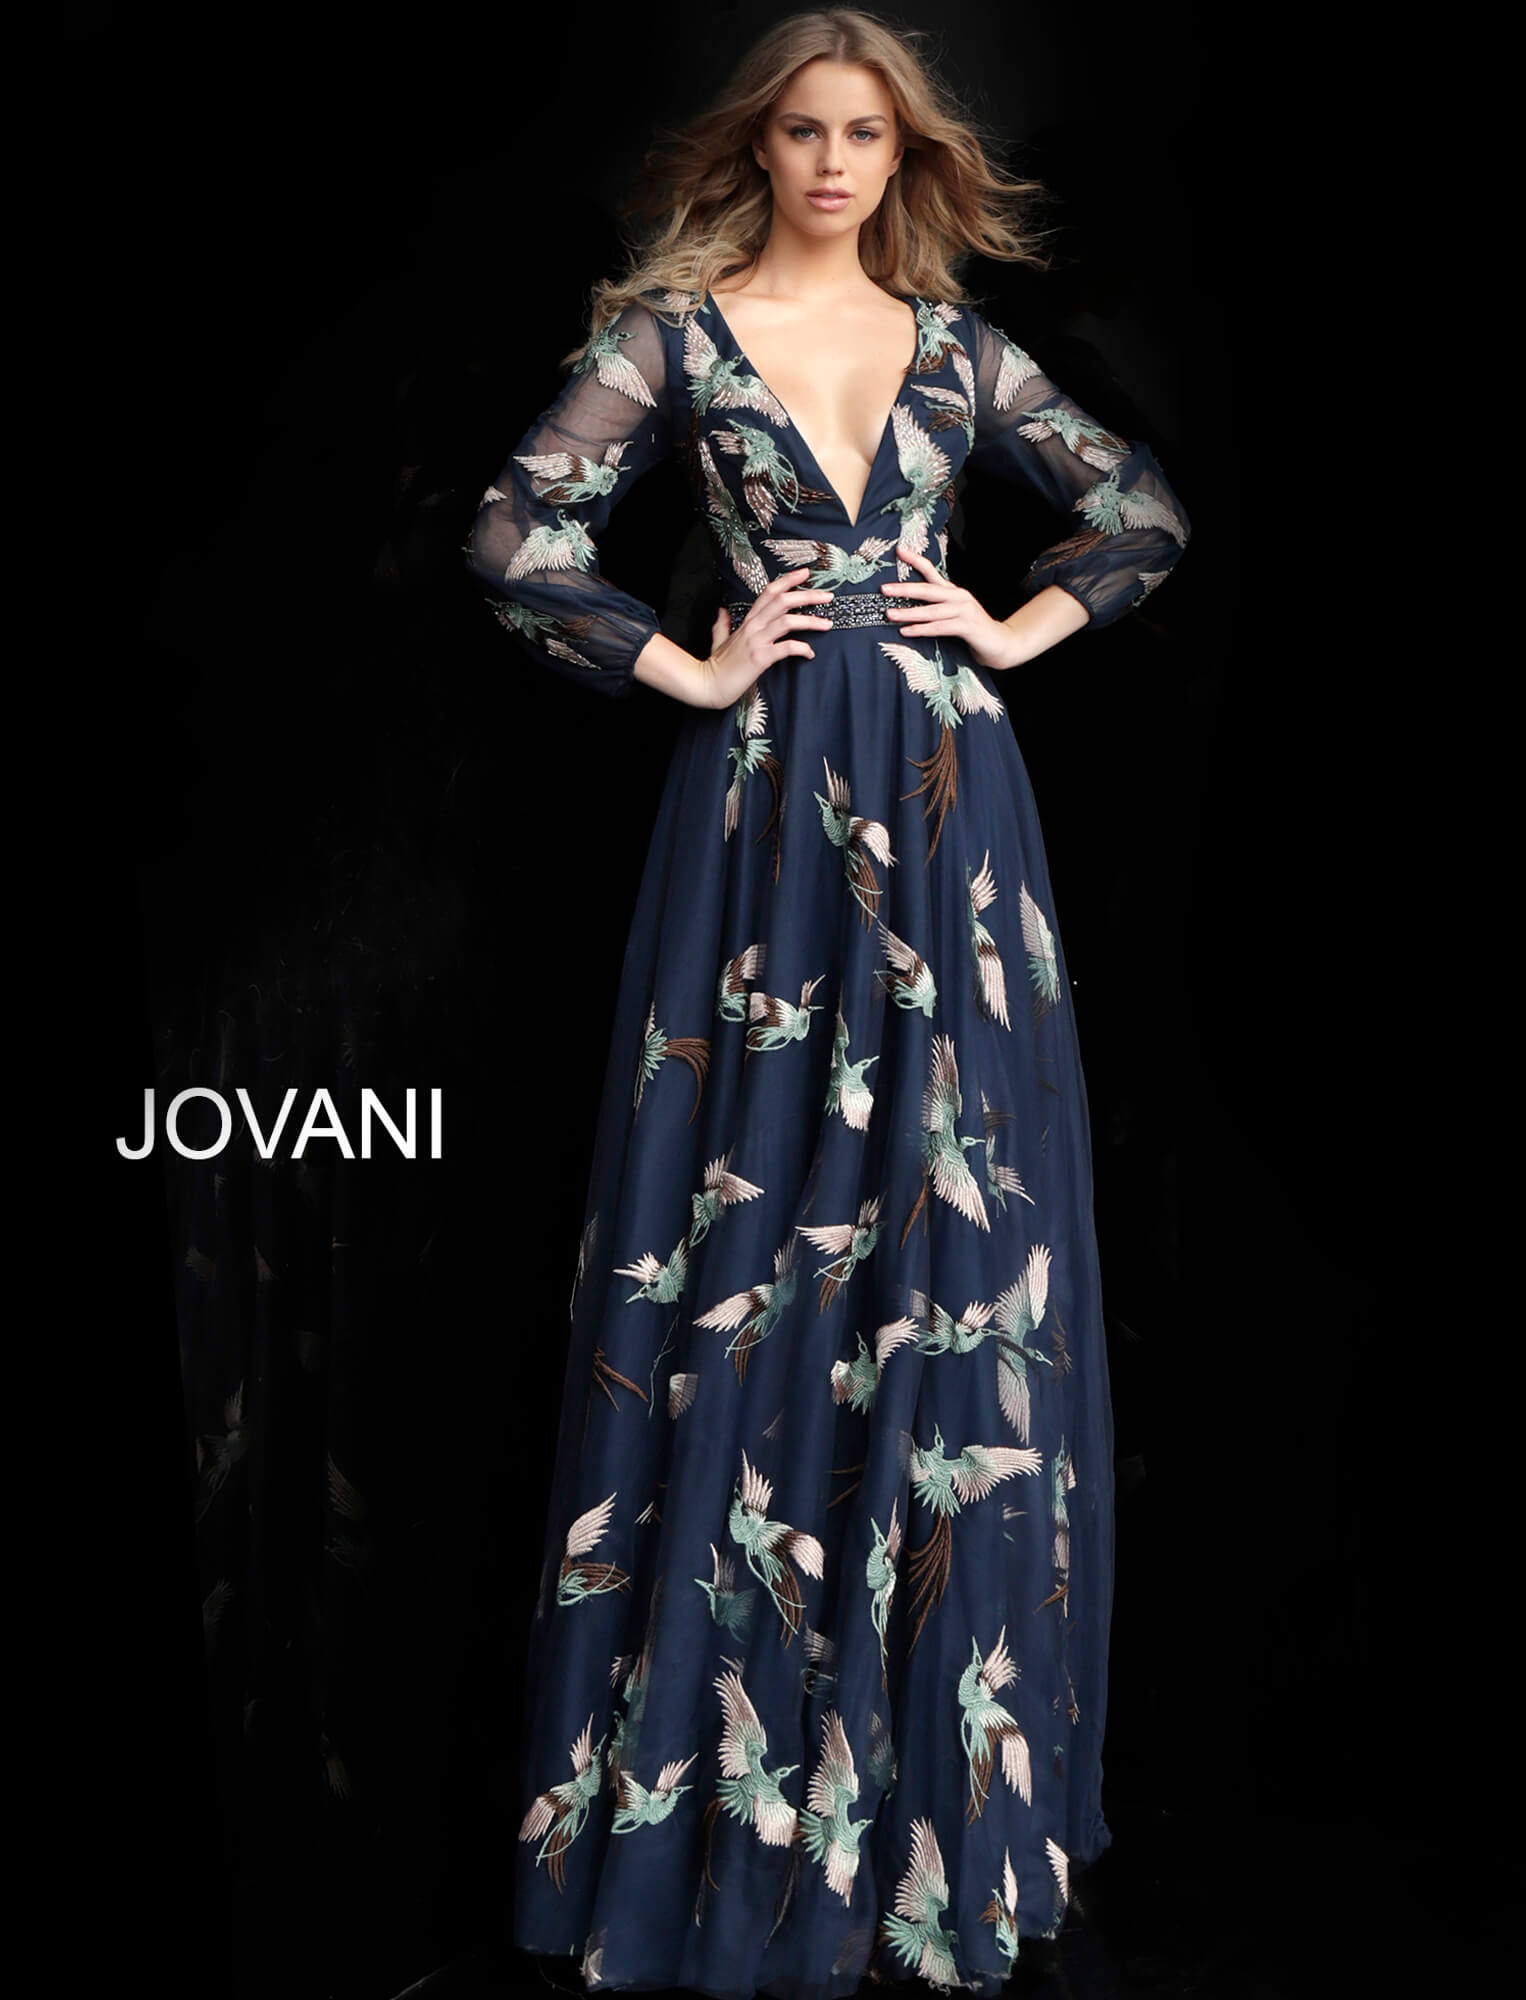 jovani Navy Embroidered Long Sleeve V Neck Prom Gown 55717 on mobile 3